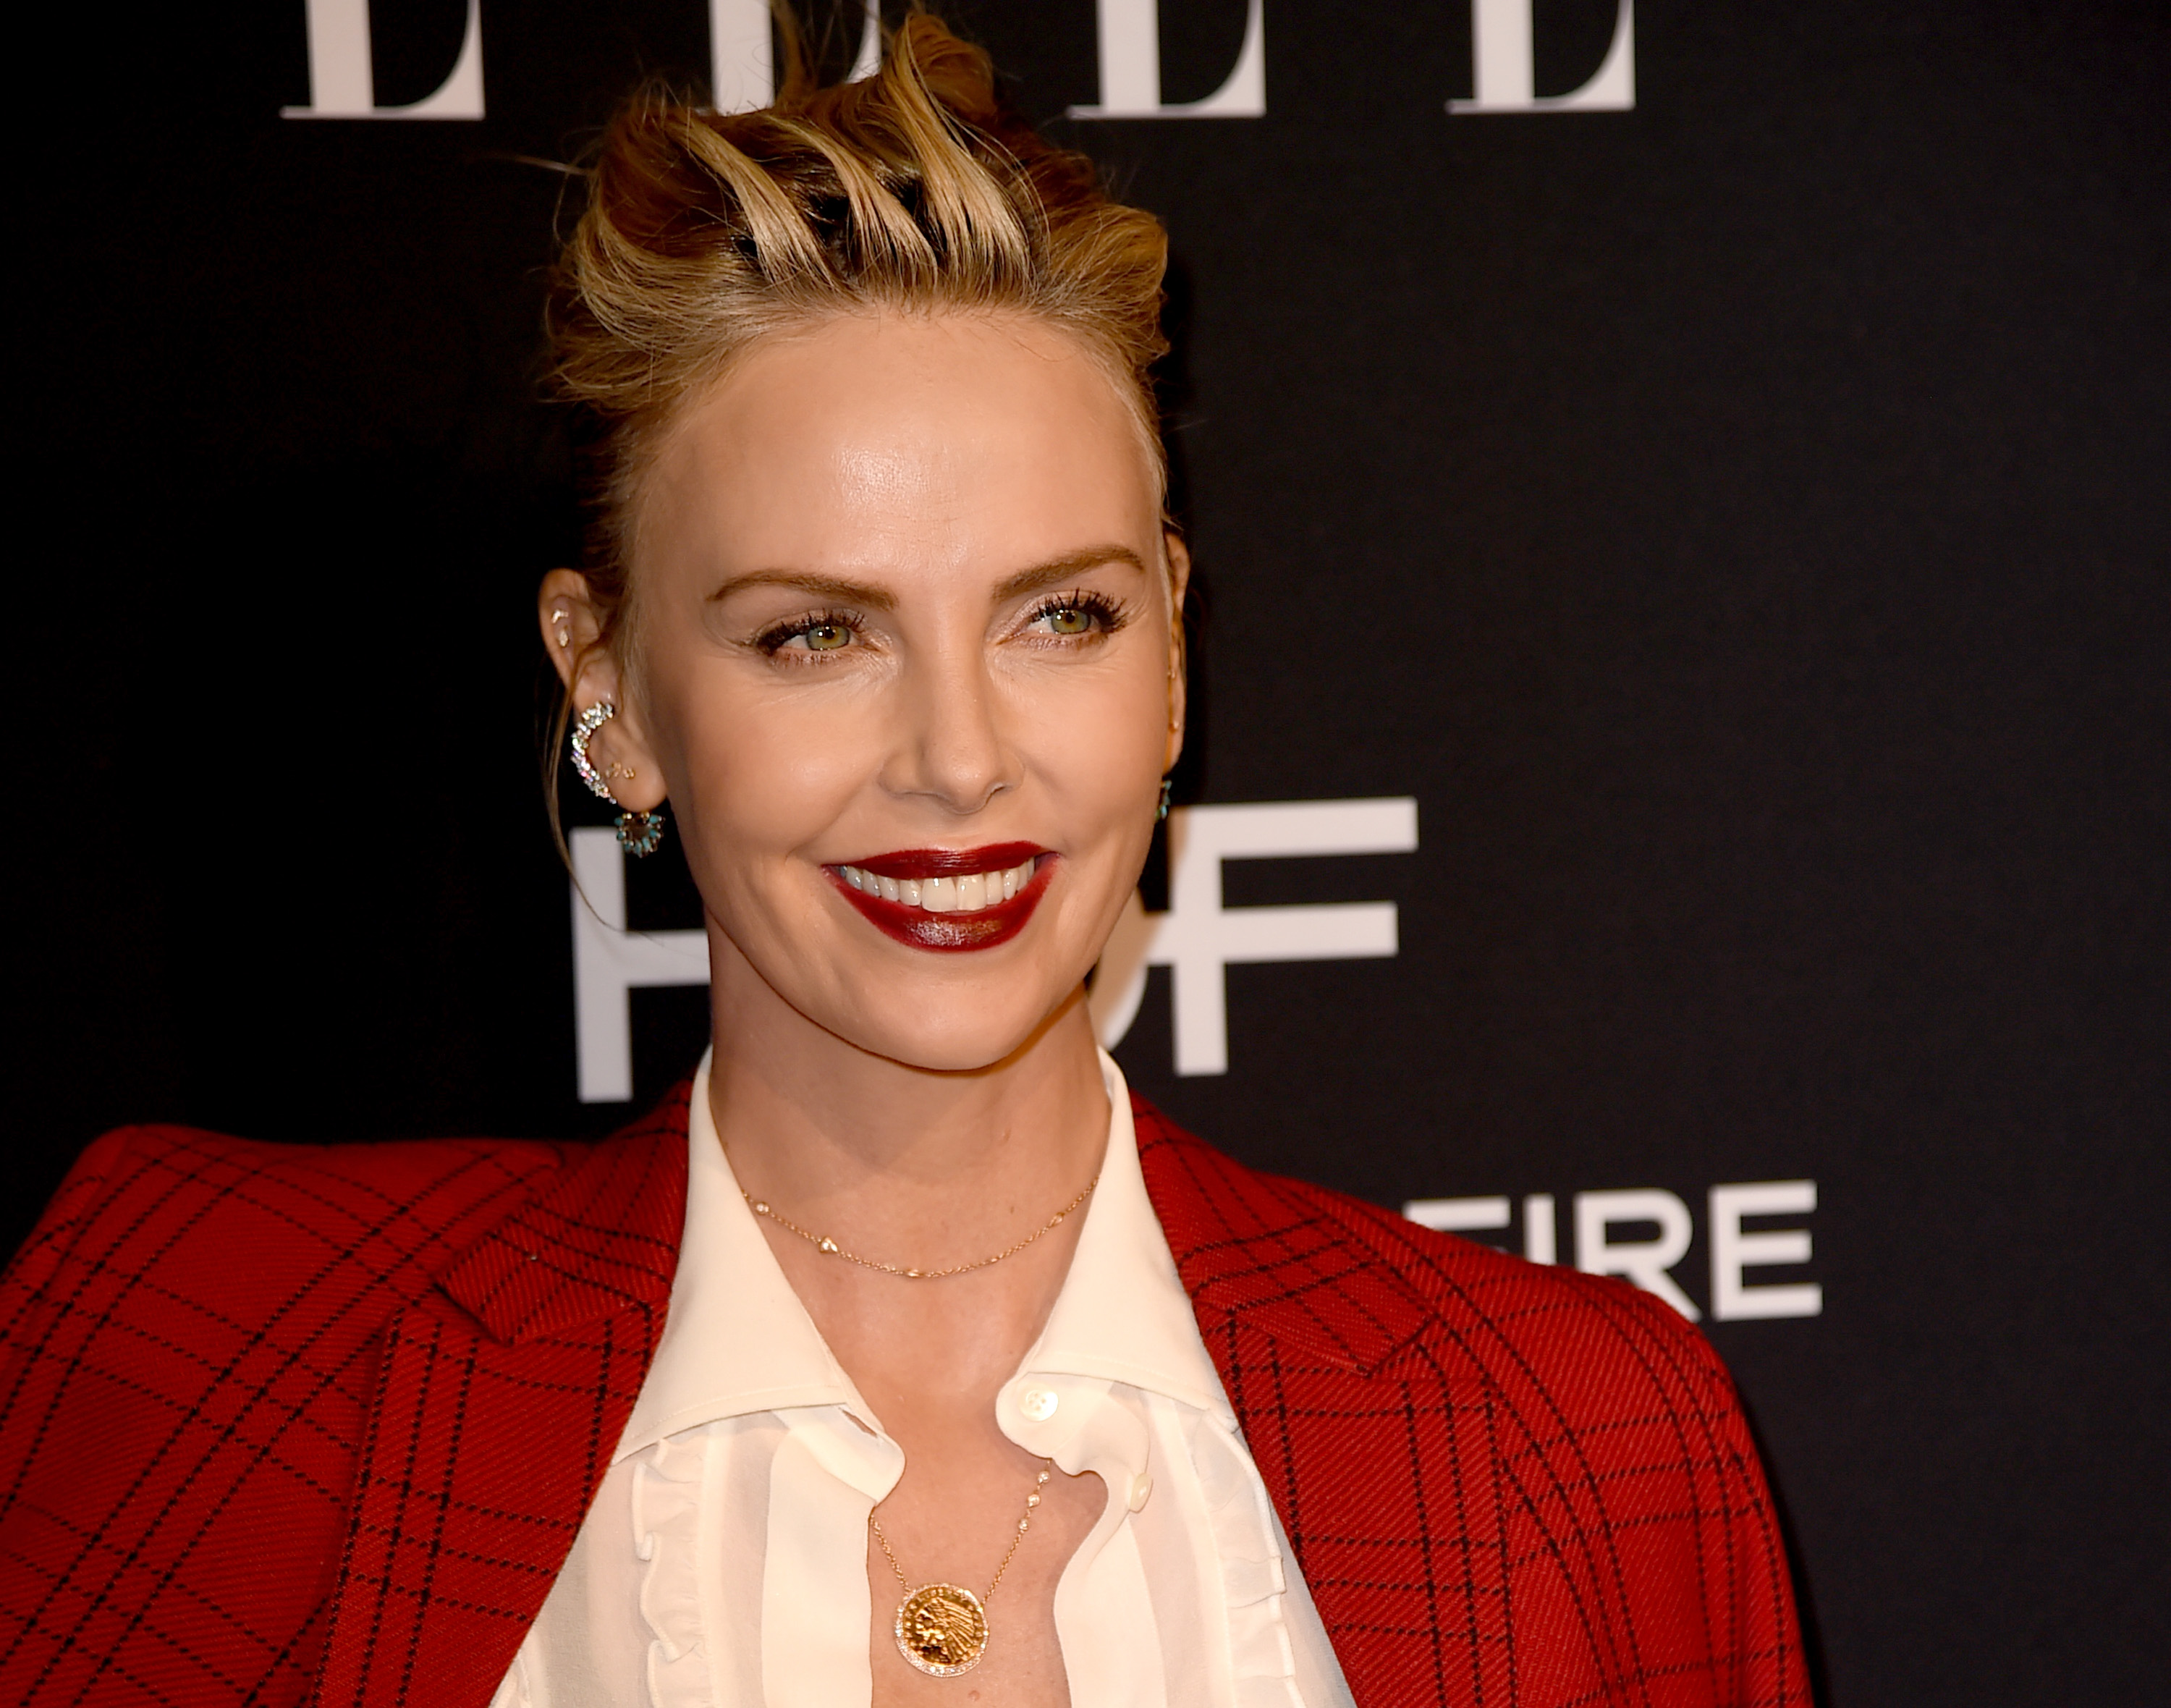 Charlize Theron arrives at the 25th Annual ELLE Women in Hollywood Celebration at the Four Seasons Hotel at Beverly Hills on October 15, 2018 in Los Angeles, California. Source: Getty